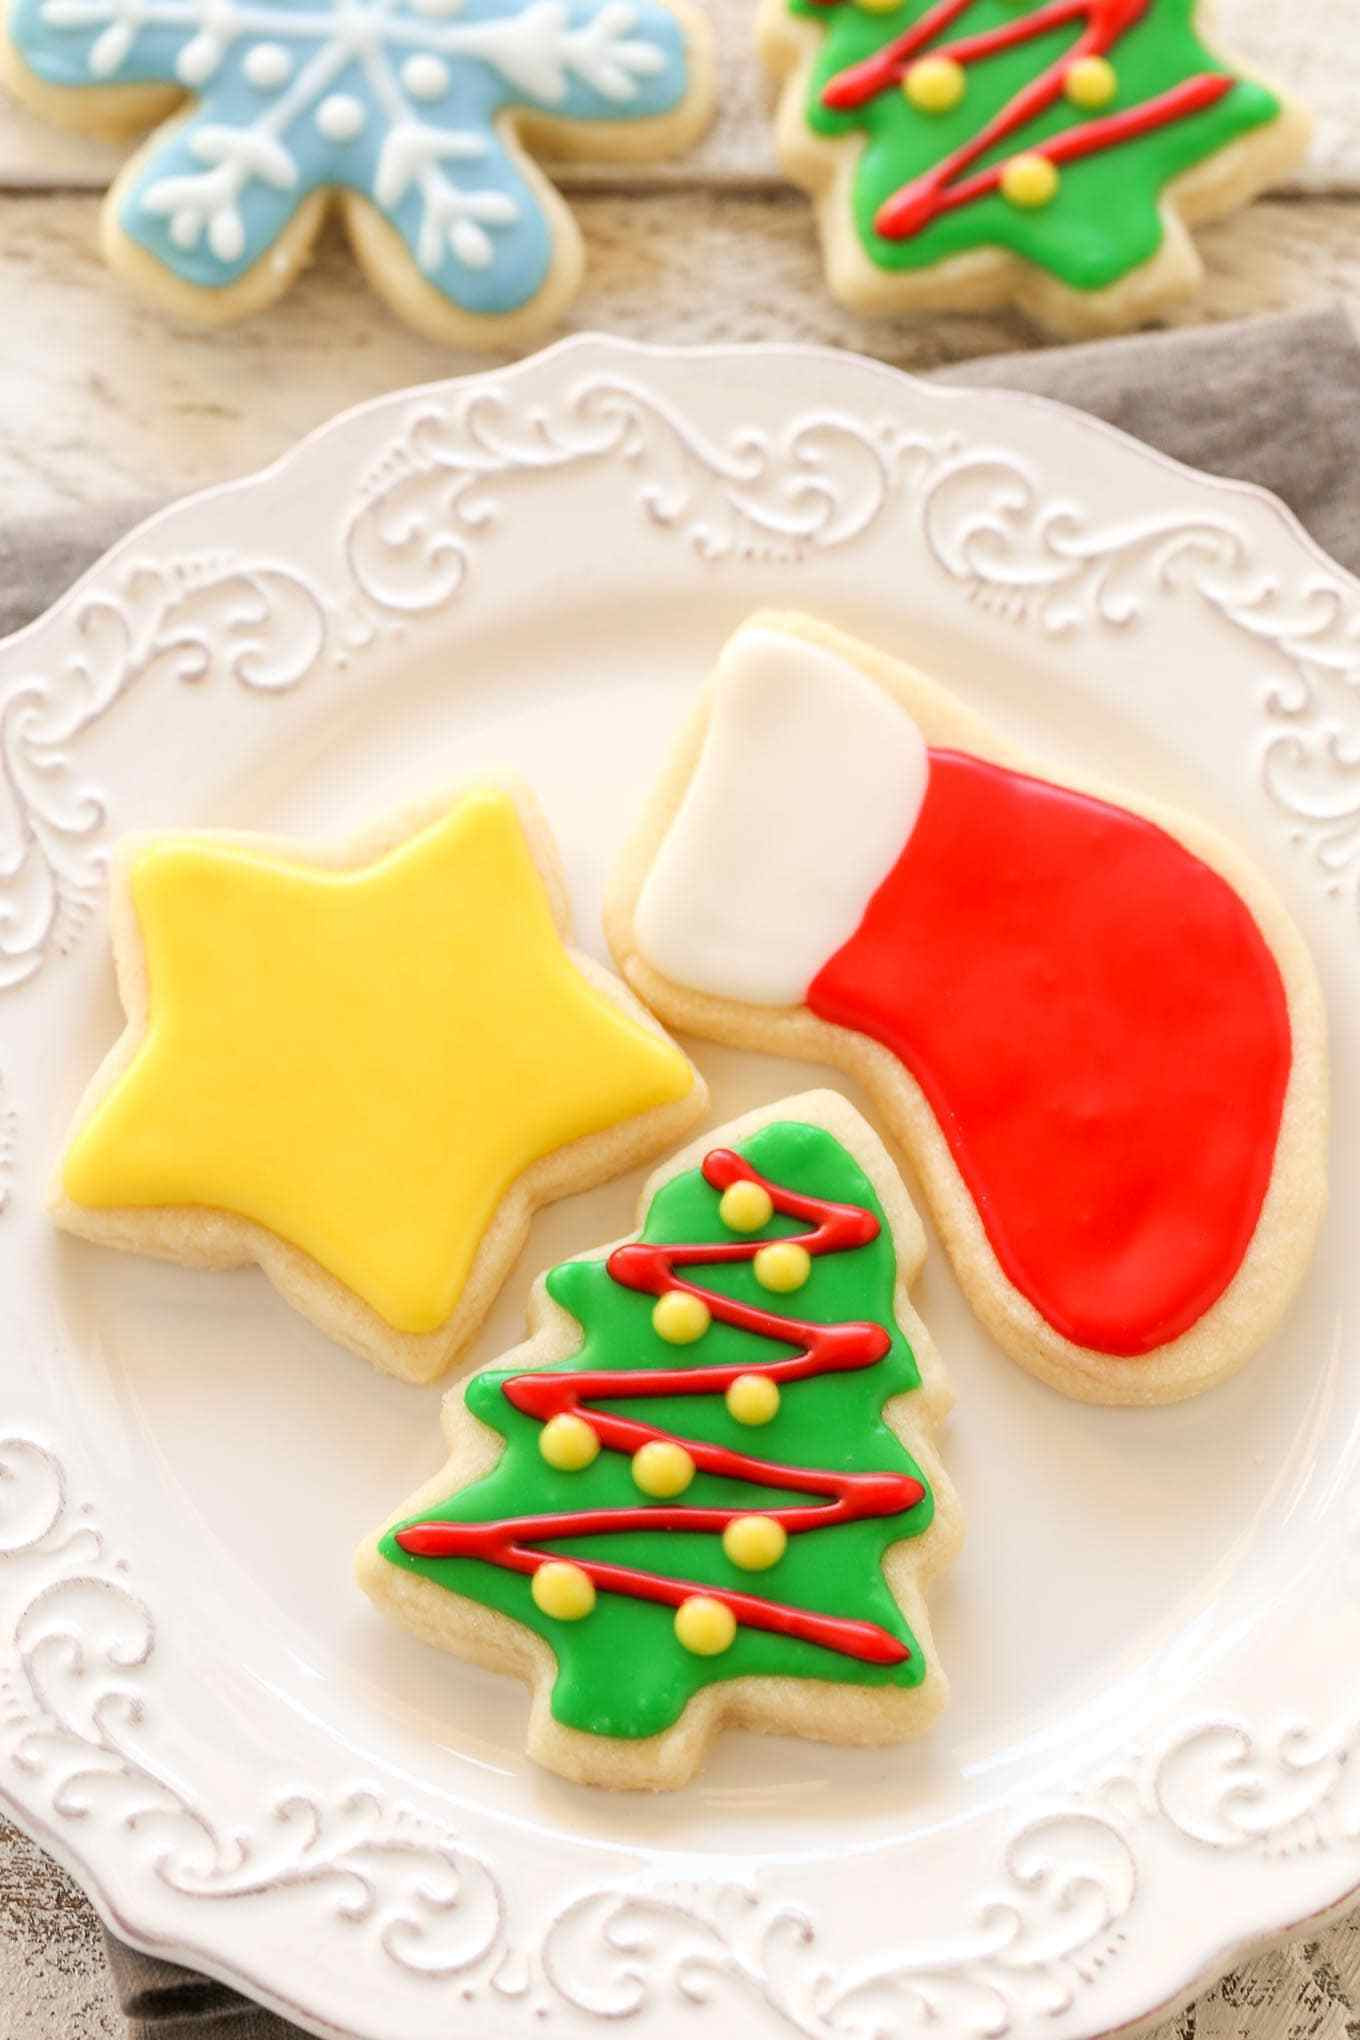 Easy Decorative Christmas Cookies  Soft Christmas Cut Out Sugar Cookies Live Well Bake ten